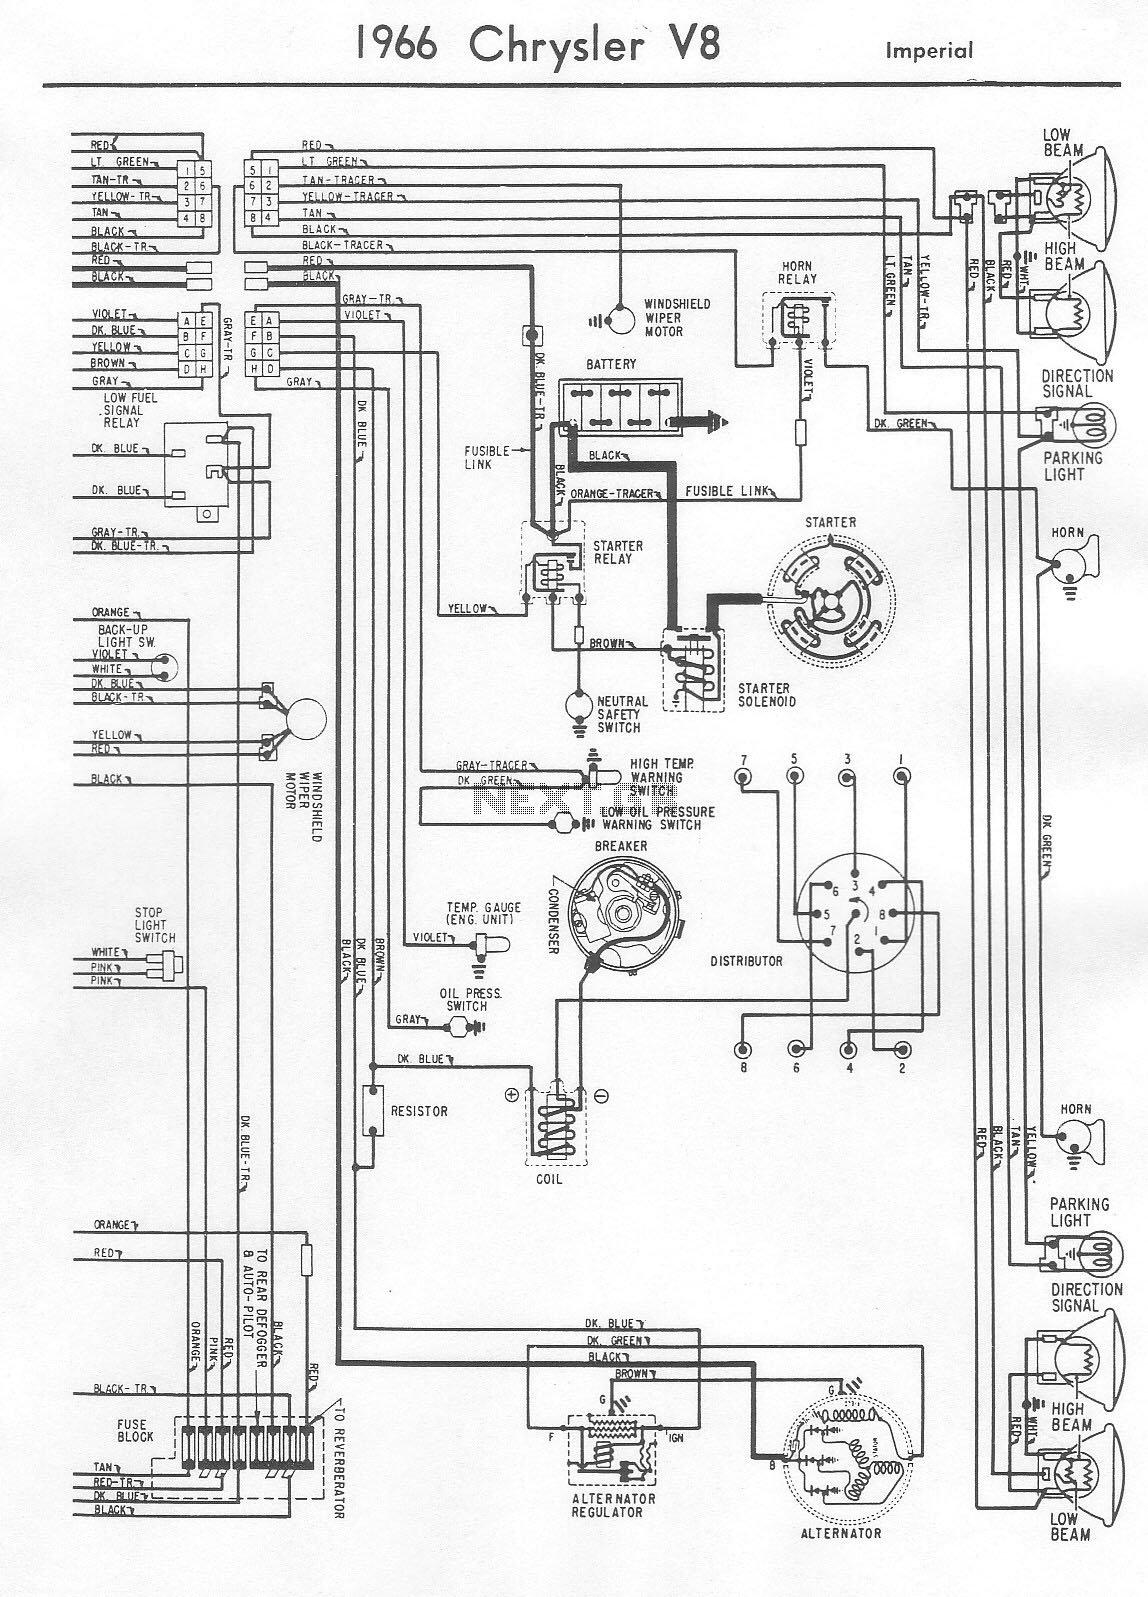 1990 Chrysler Imperial Wiring Diagram 2004 Pacifica 1991 90 Diagrams Get Free Image Dodge Ram